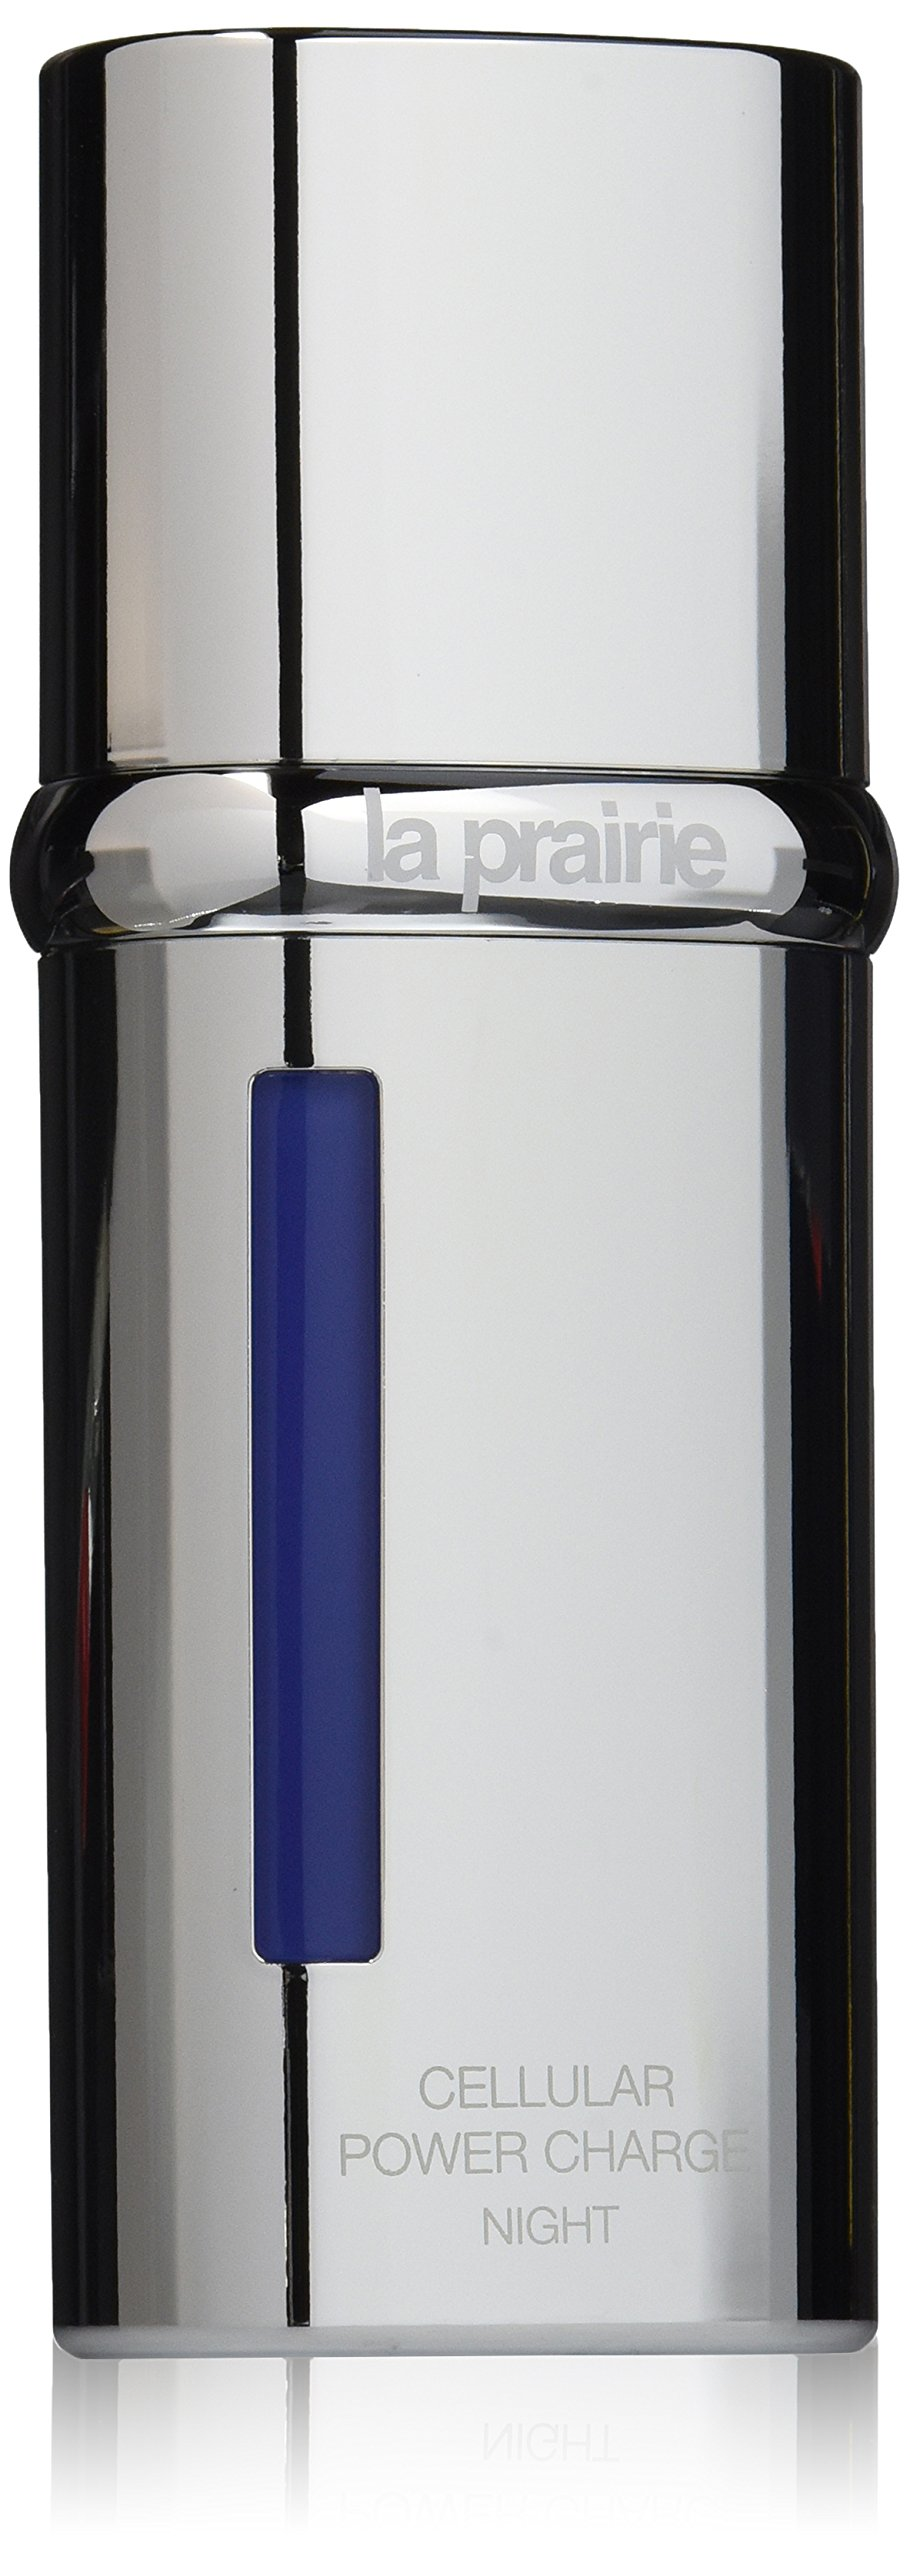 LA Prairie Cellular Power Charge Night, 1.35 Ounce